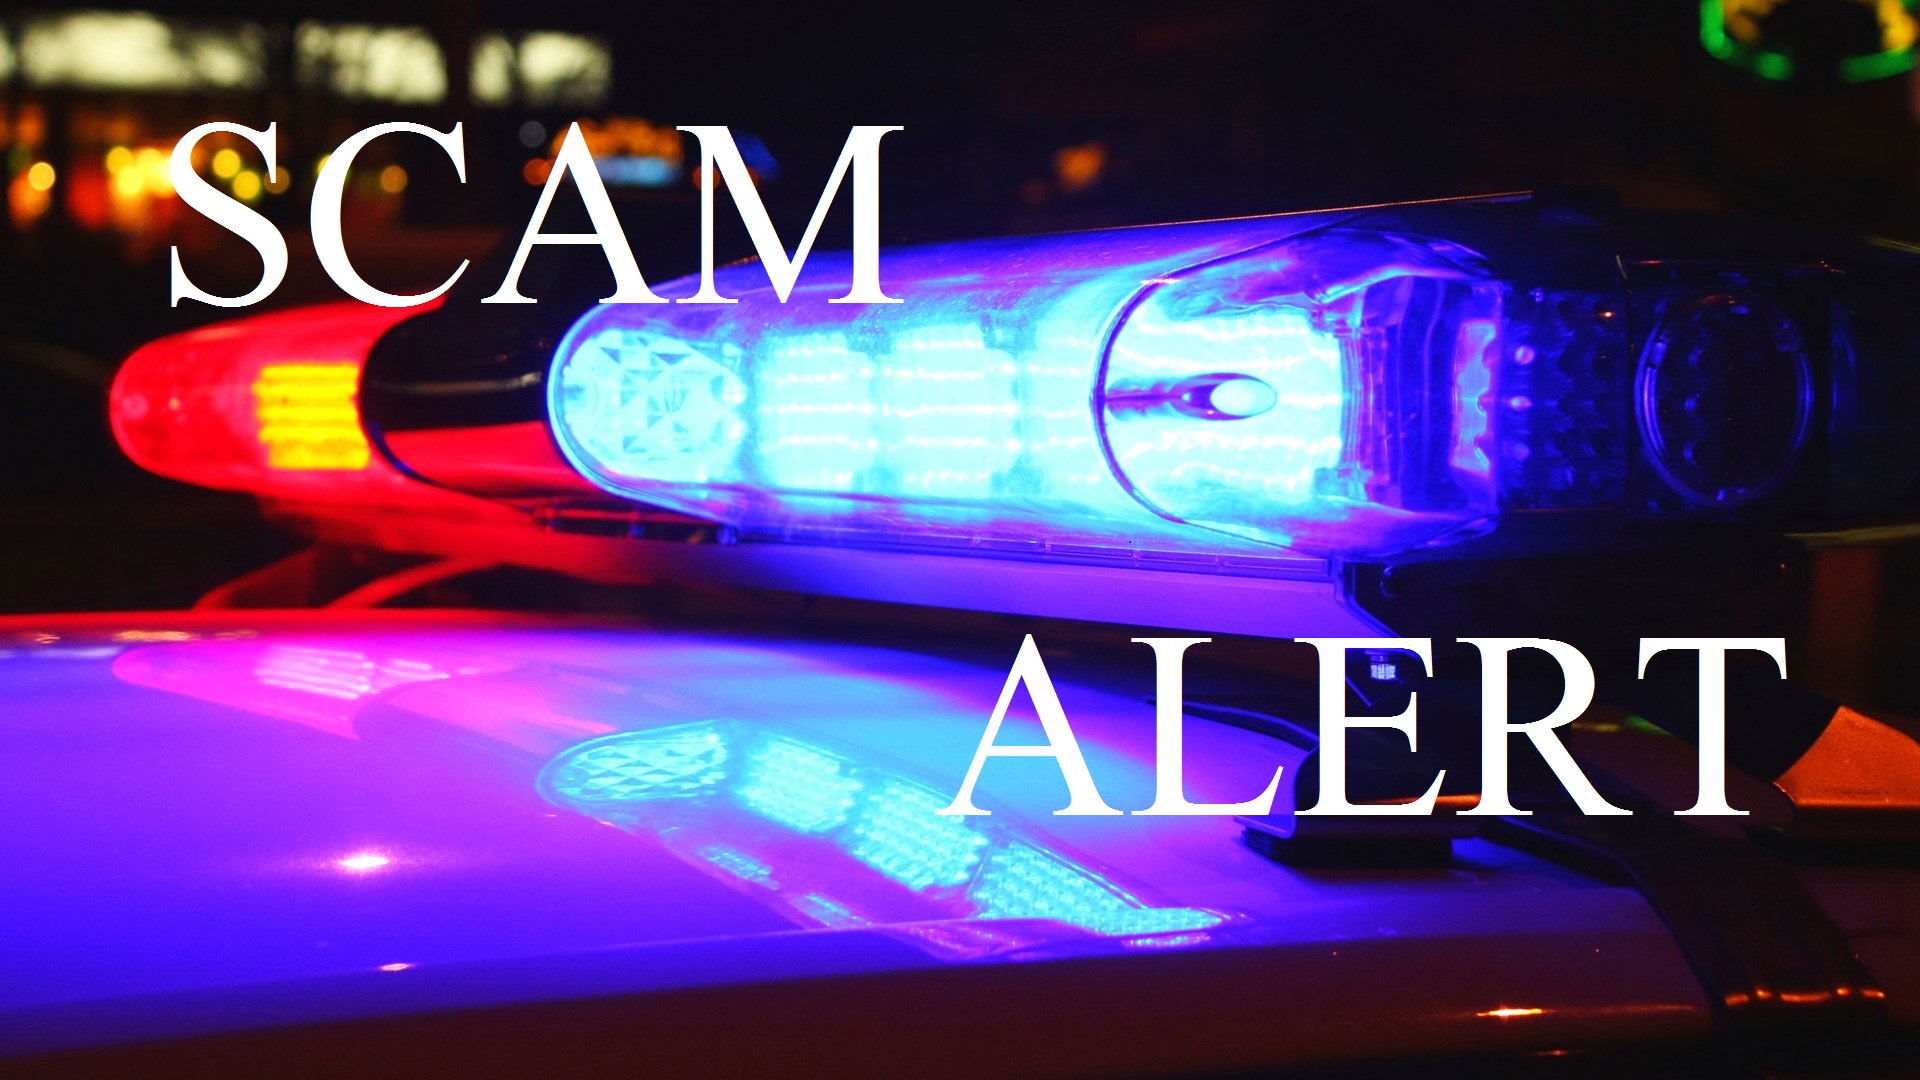 Local Authorities Warning Citizens About Phone Scams